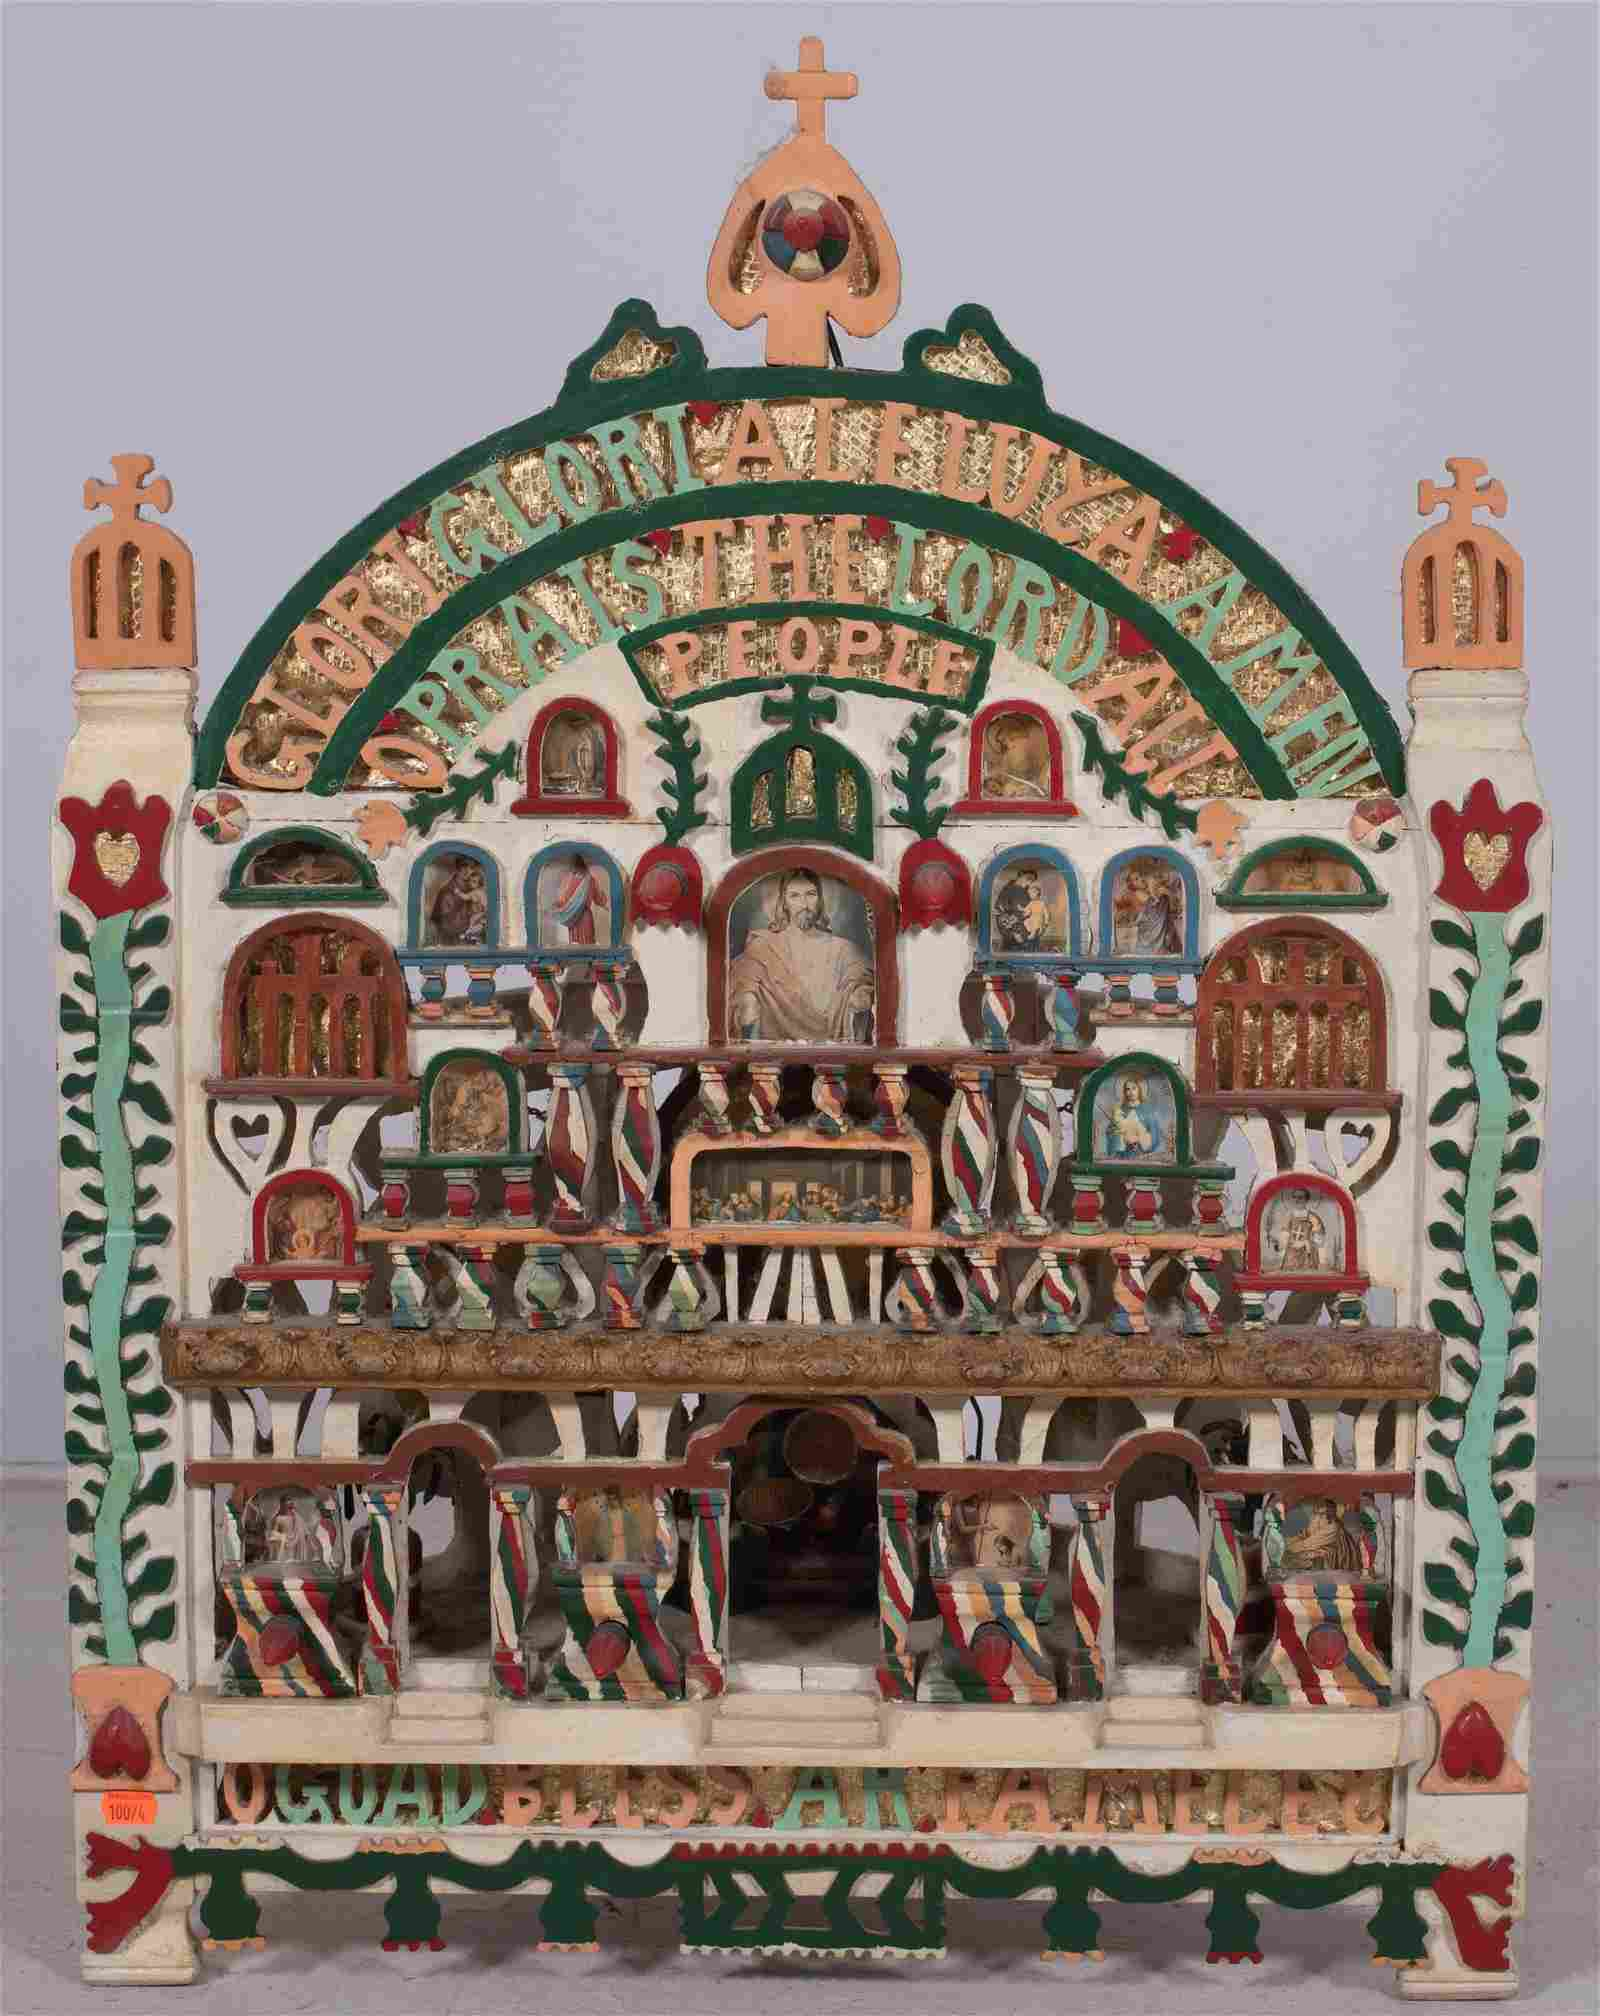 Carved and painted Folk art Religious shrine/temple